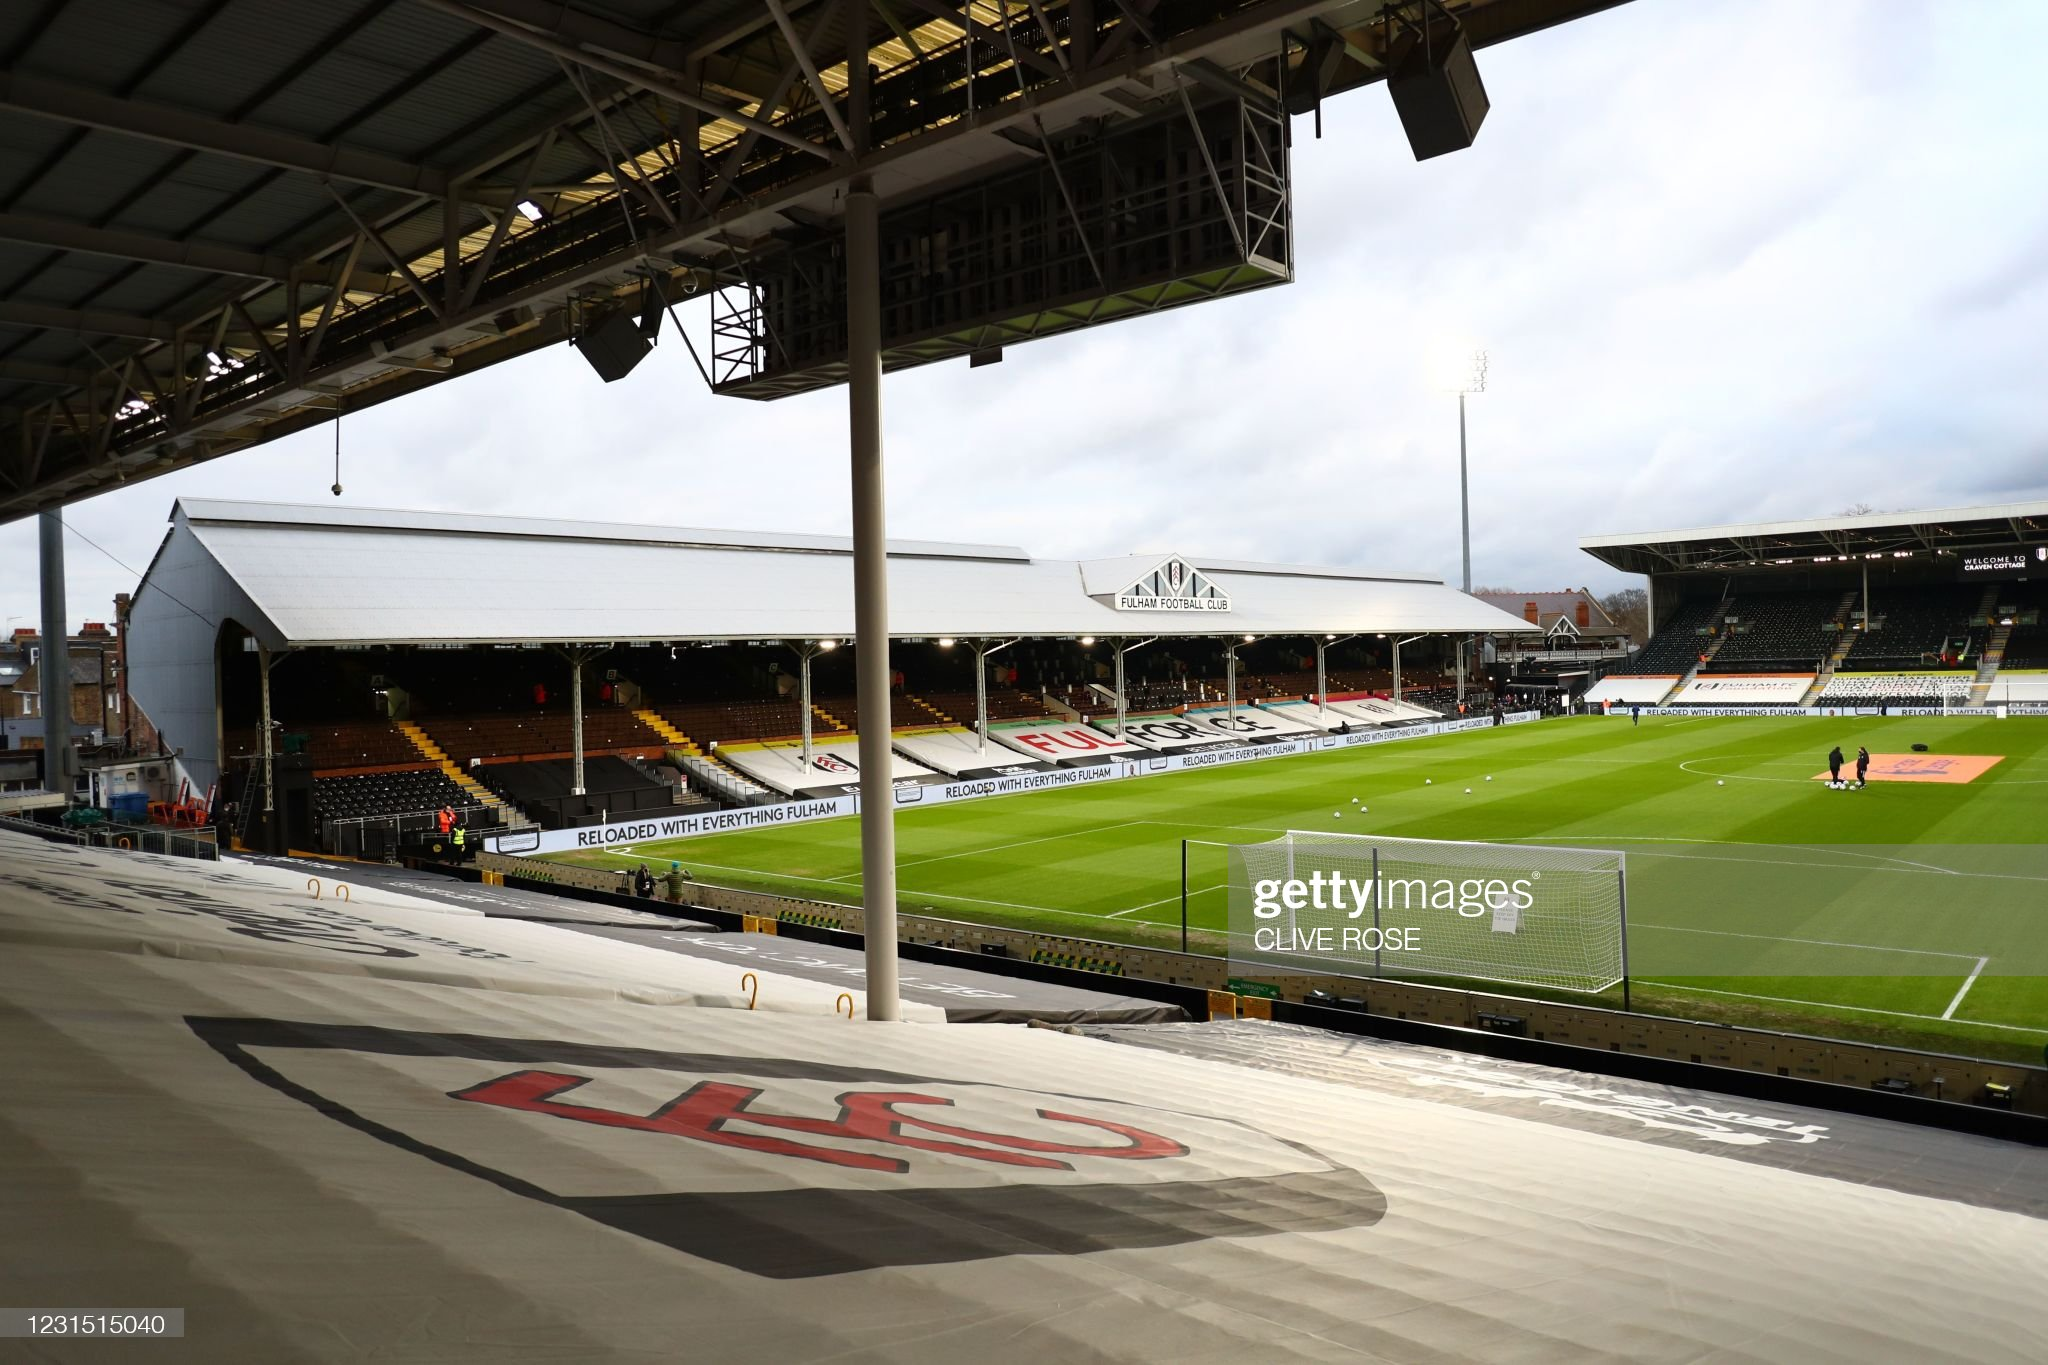 Fulham vs Wolves Preview, prediction and odds